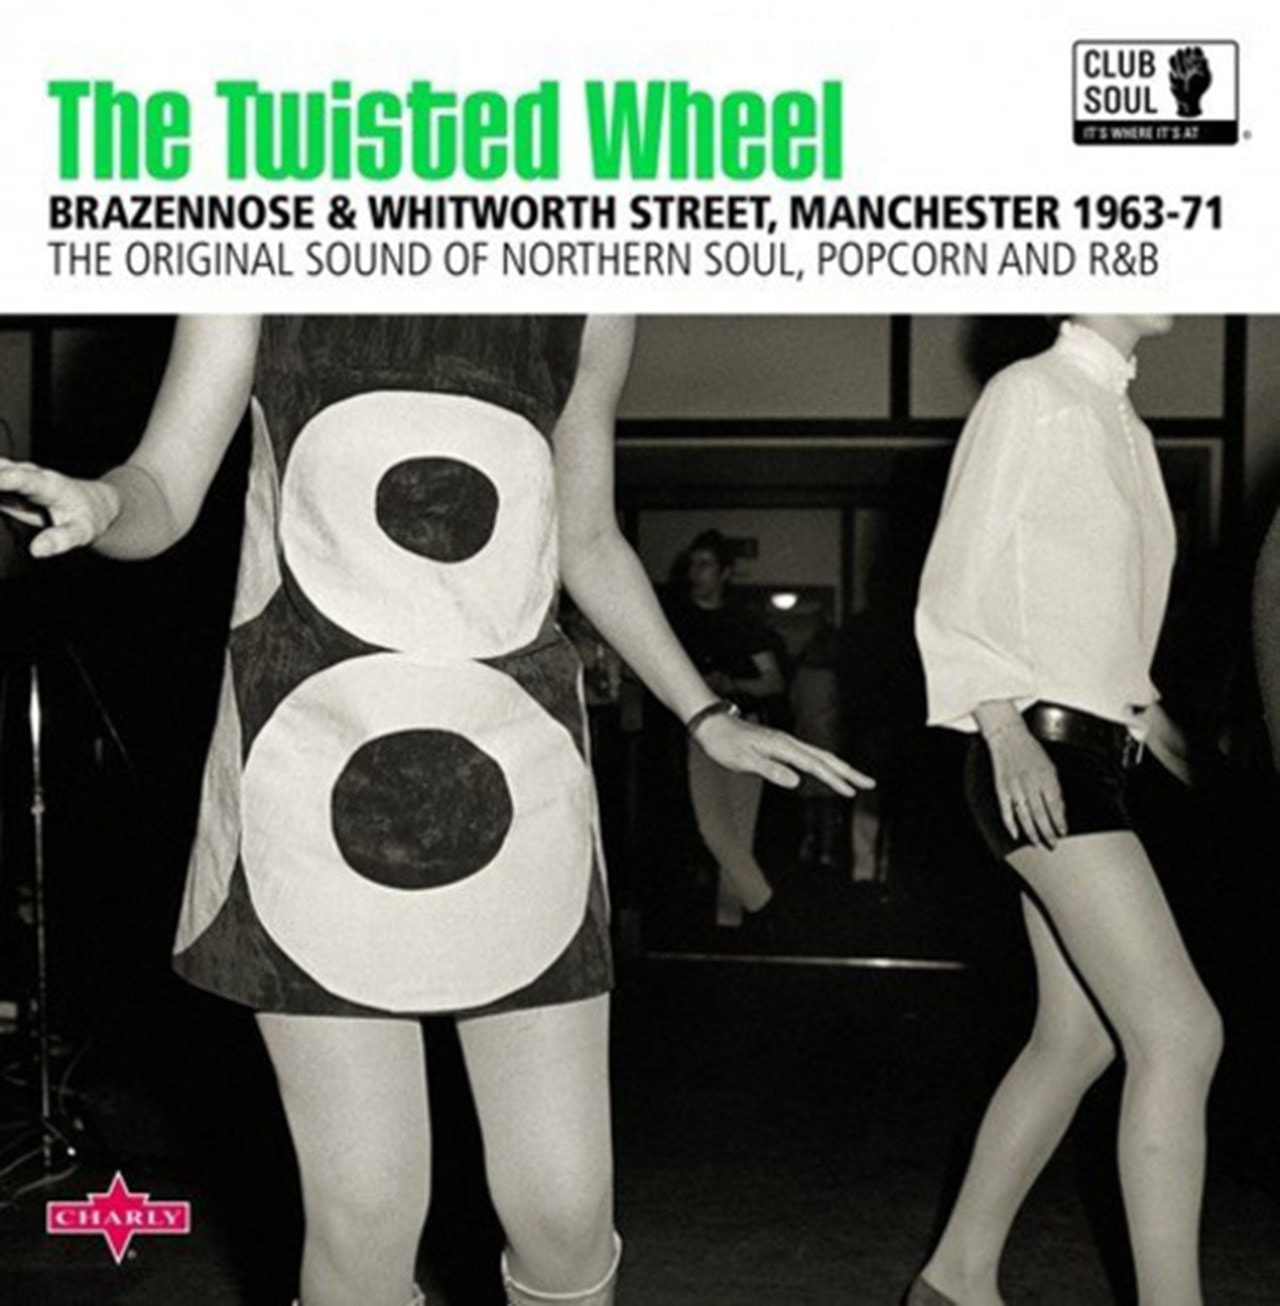 The Twisted Wheel: The Original Sound of Northern Soul, Popcorn and R&B - 1